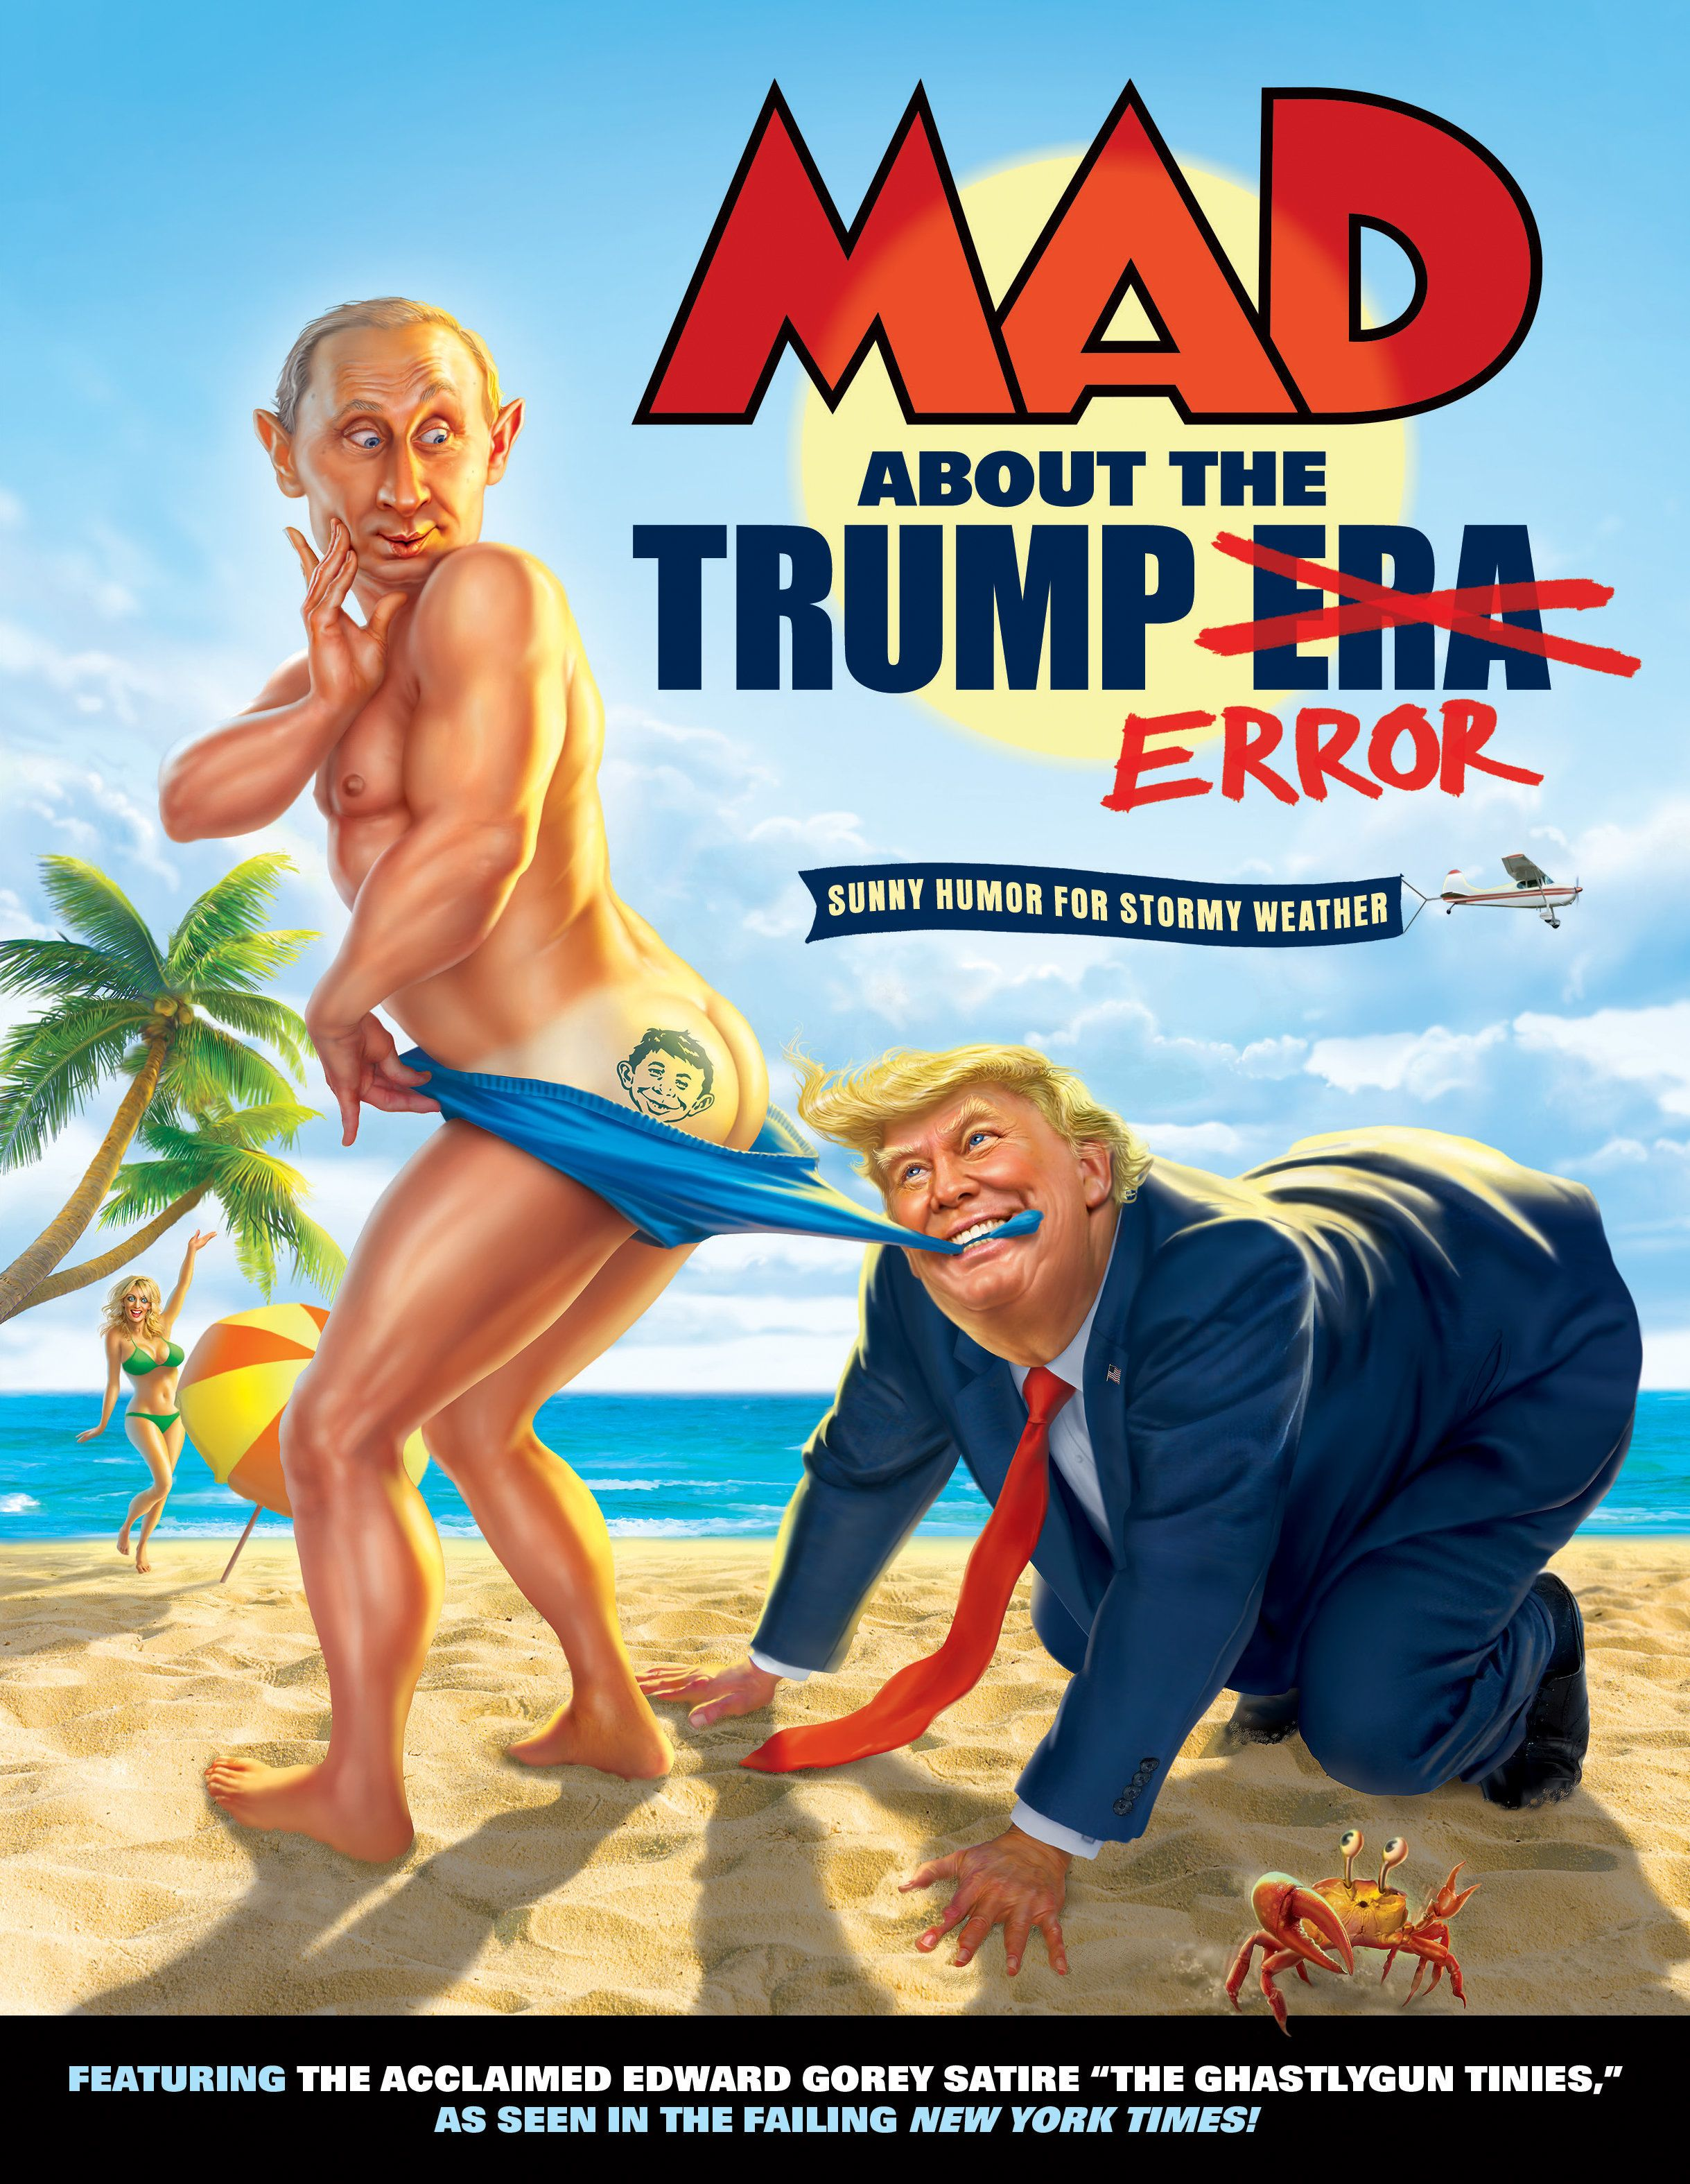 Mad Magazine Goes For Madly Hilarious In New Book Bashing Trump Era